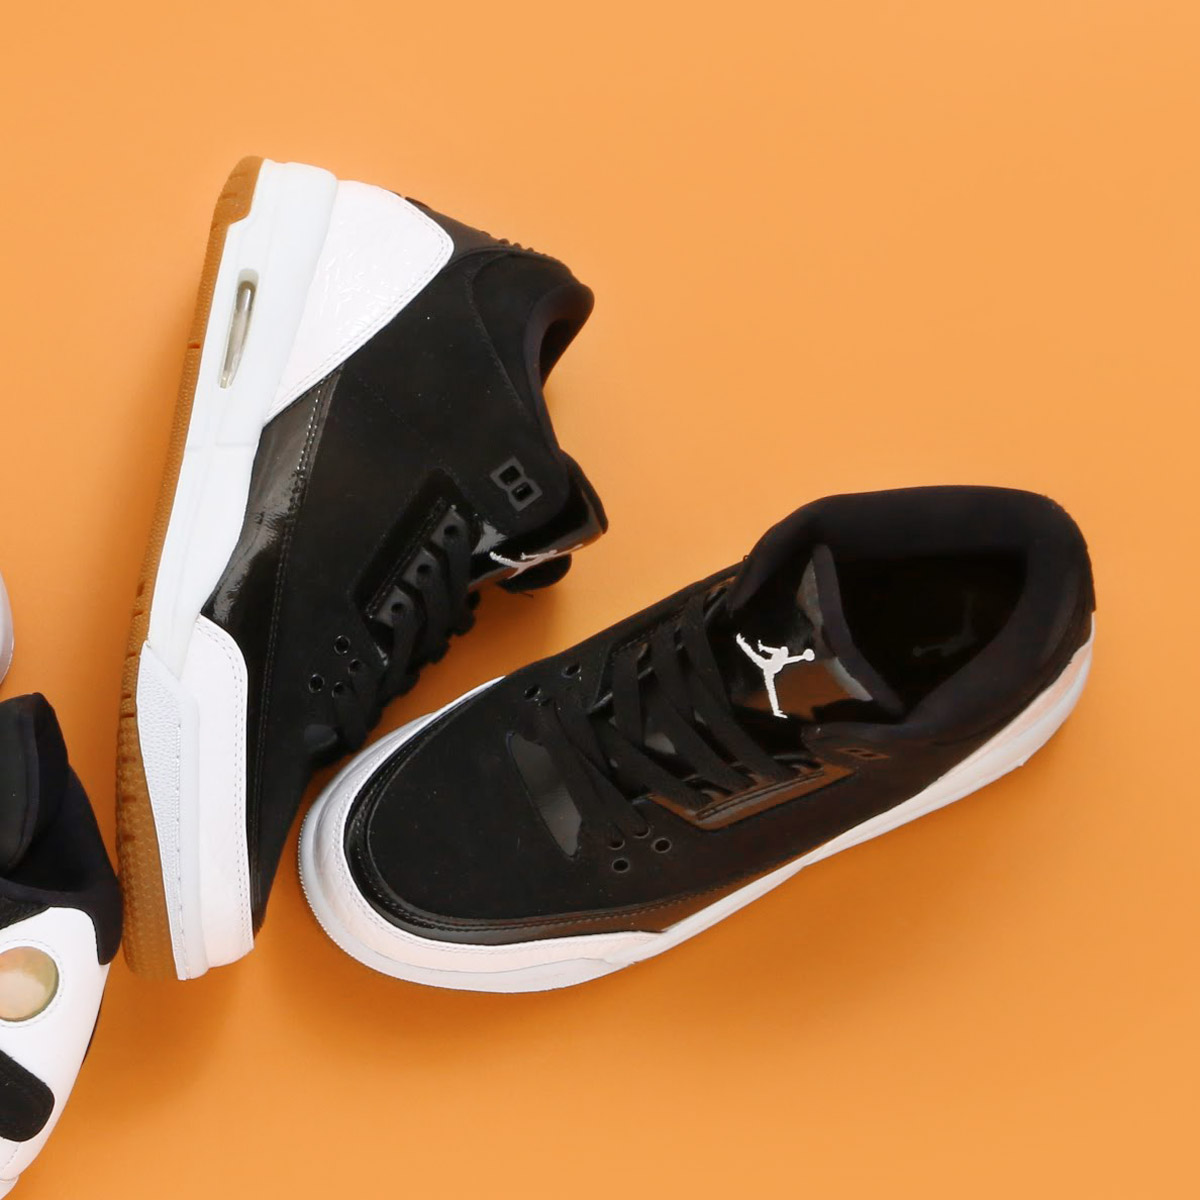 28a58deaee5b NIKE AIR JORDAN 3 RETRO GG (Nike Air Jordan 3 nostalgic GG) (BLACK WHITE-GUM  MED BROWN)18SP-S